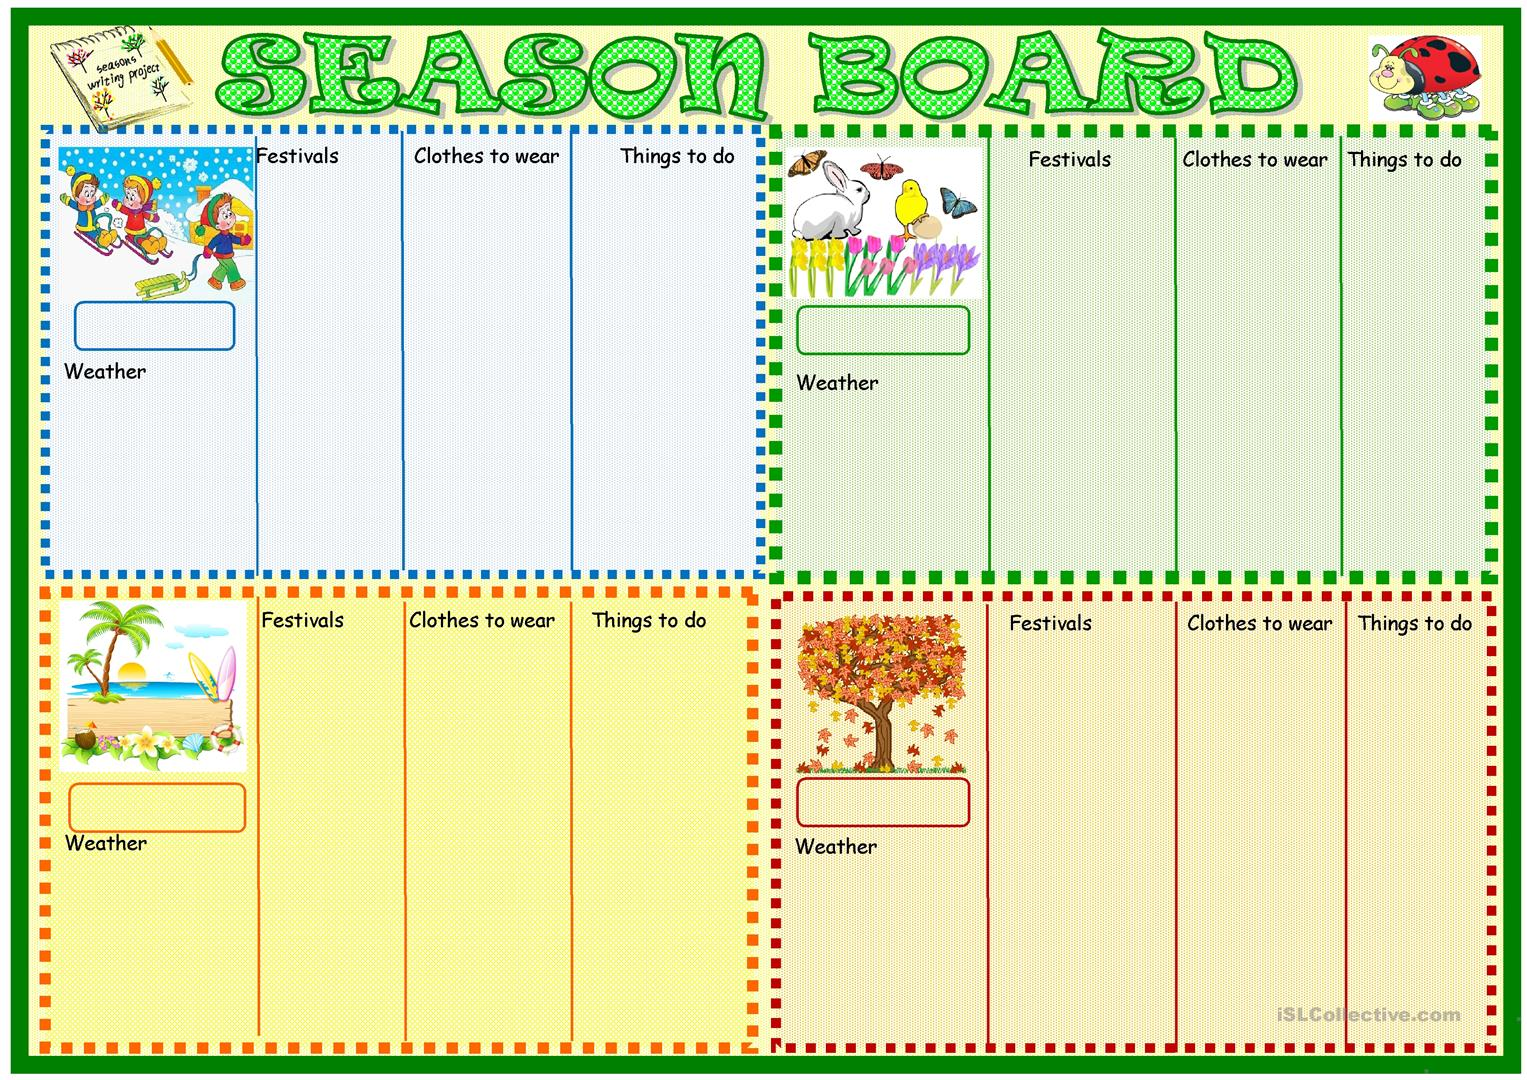 Season Board Worksheet